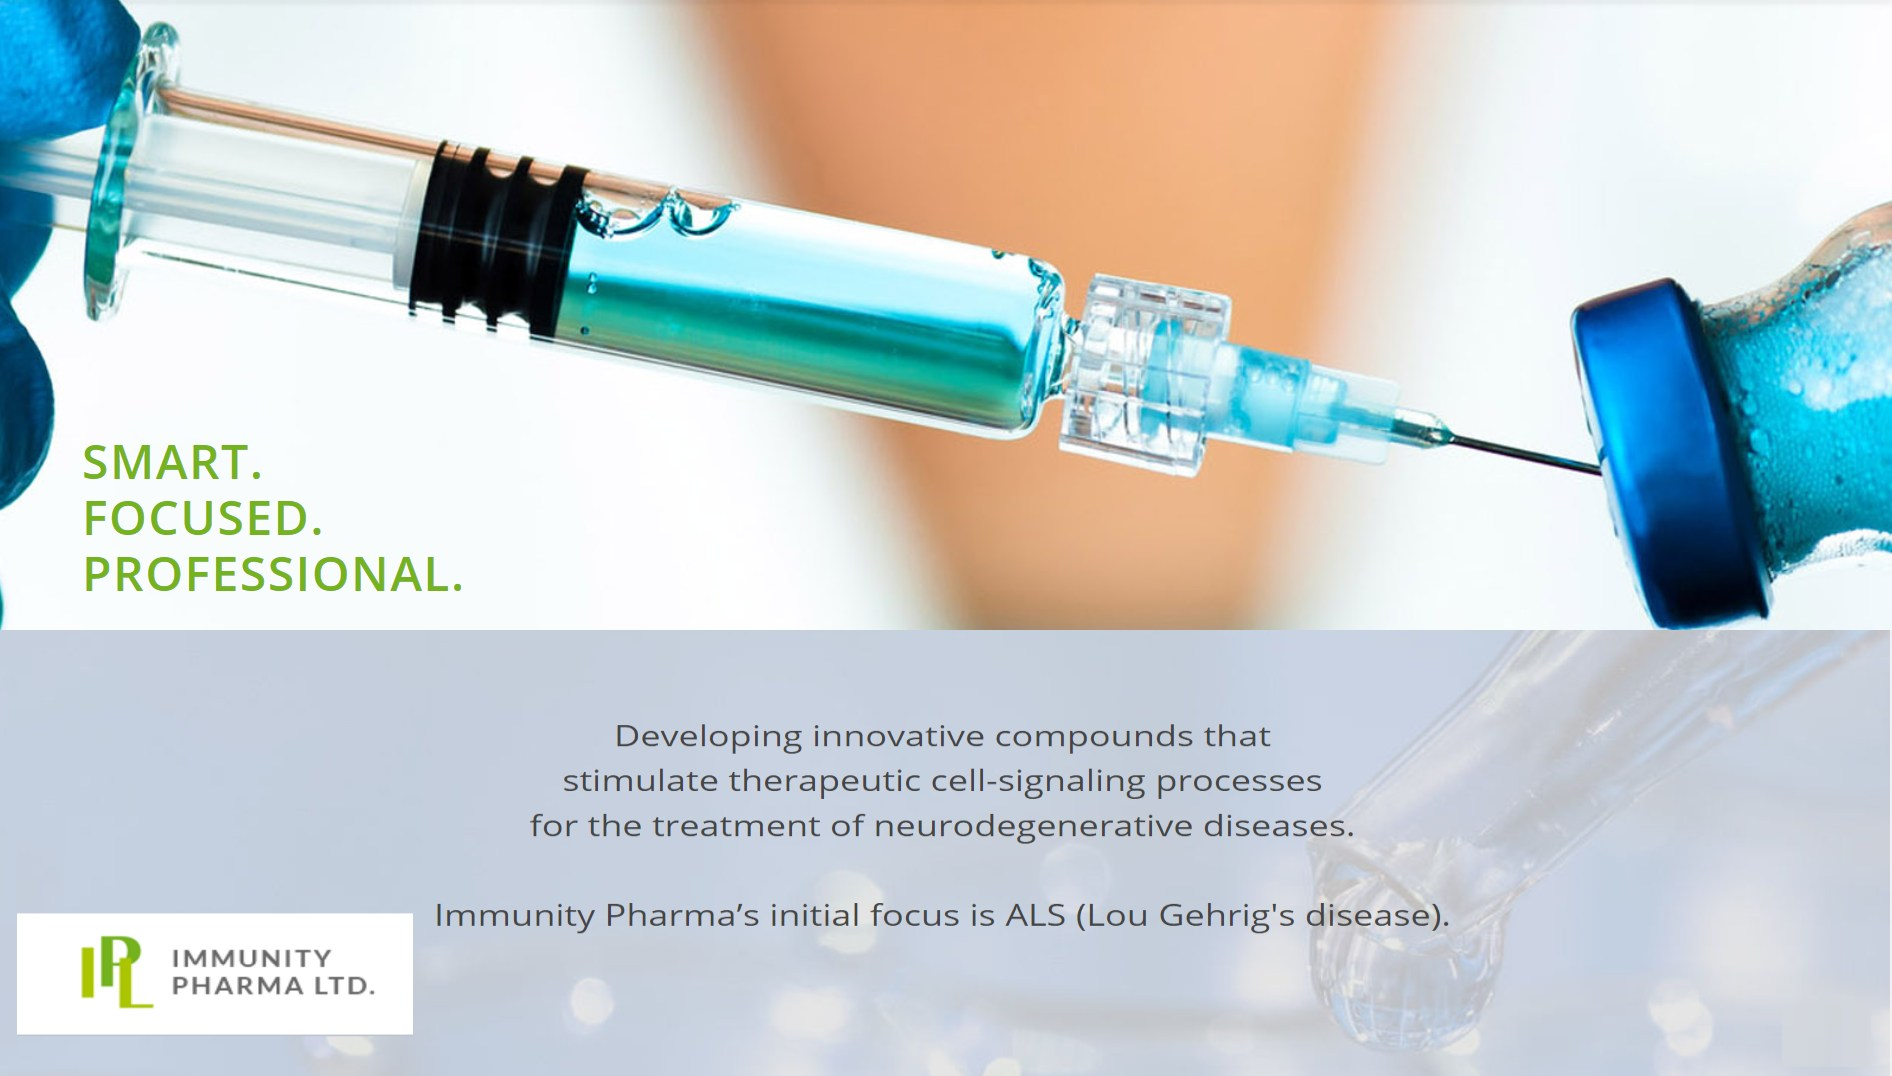 Promising Results in Immunity Pharma's Interim Phase 1/2a IPL344 in ALS Study